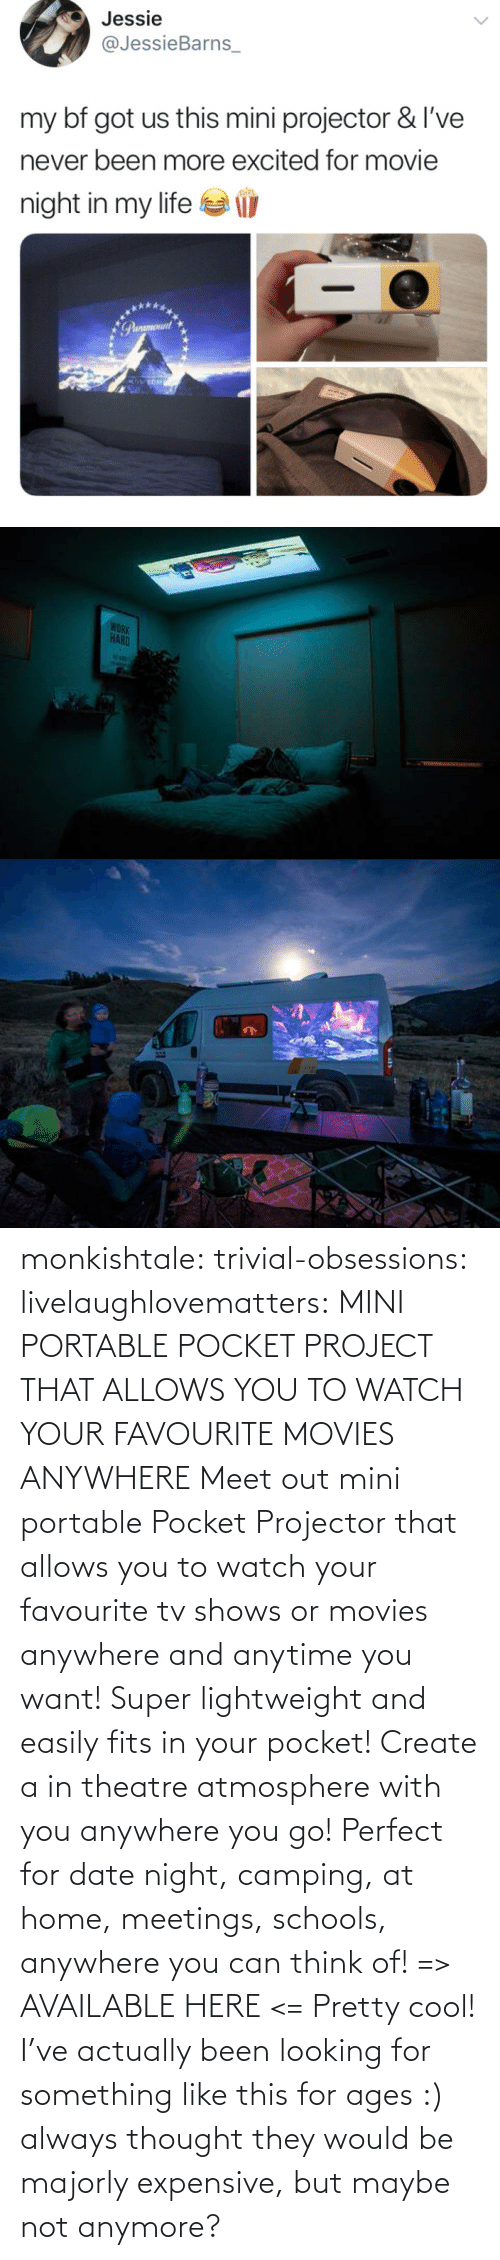 Your: monkishtale: trivial-obsessions:   livelaughlovematters:   MINI PORTABLE POCKET PROJECT THAT ALLOWS YOU TO WATCH YOUR FAVOURITE MOVIES ANYWHERE Meet out mini portable Pocket Projector that allows you to watch your favourite tv shows or movies anywhere and anytime you want! Super lightweight and easily fits in your pocket! Create a in theatre atmosphere with you anywhere you go! Perfect for date night, camping, at home, meetings, schools, anywhere you can think of! => AVAILABLE HERE <=    Pretty cool!    I've actually been looking for something like this for ages :) always thought they would be majorly expensive, but maybe not anymore?